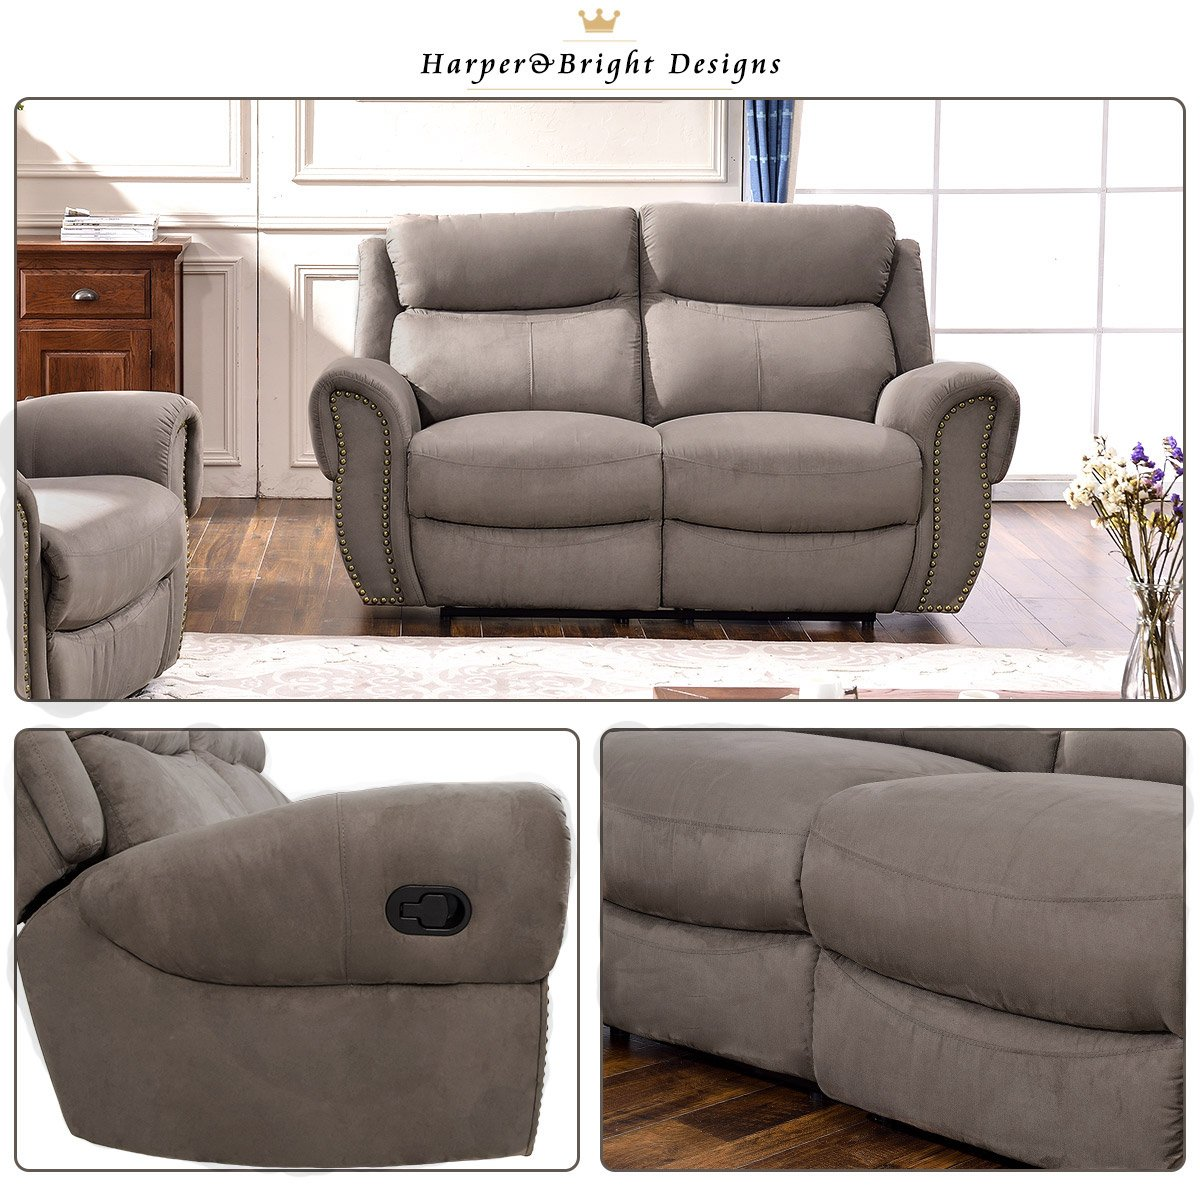 Fabulous Best Loveseat Recliner Under 500 For Your Living Room Space Pabps2019 Chair Design Images Pabps2019Com